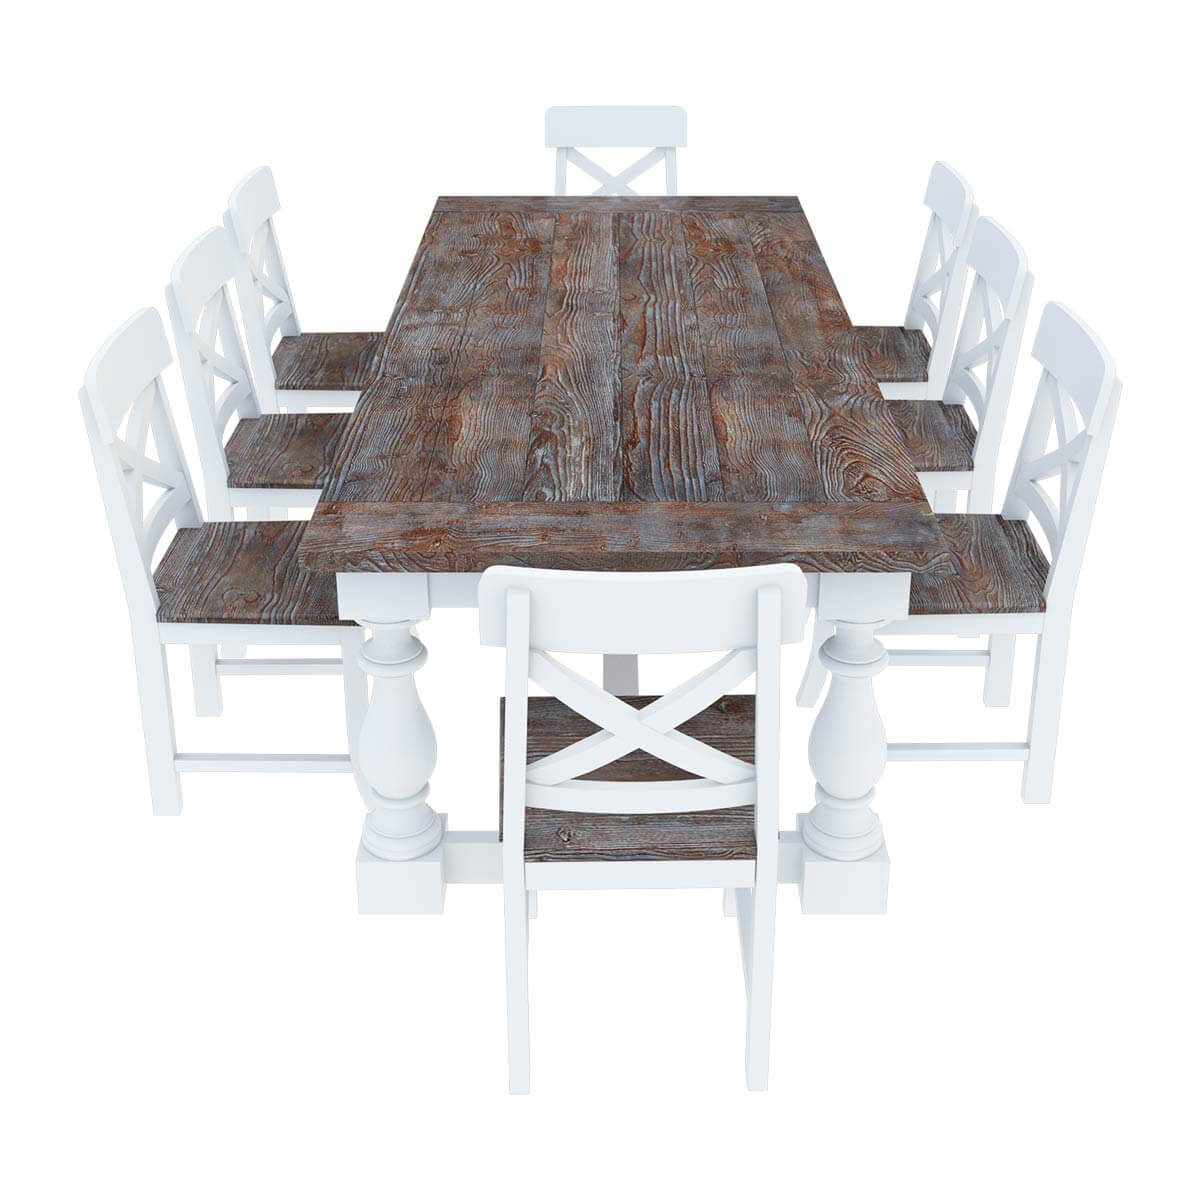 Teak Dining Table And Chairs: Danville Modern Teak And Solid Wood Dining Table With 8